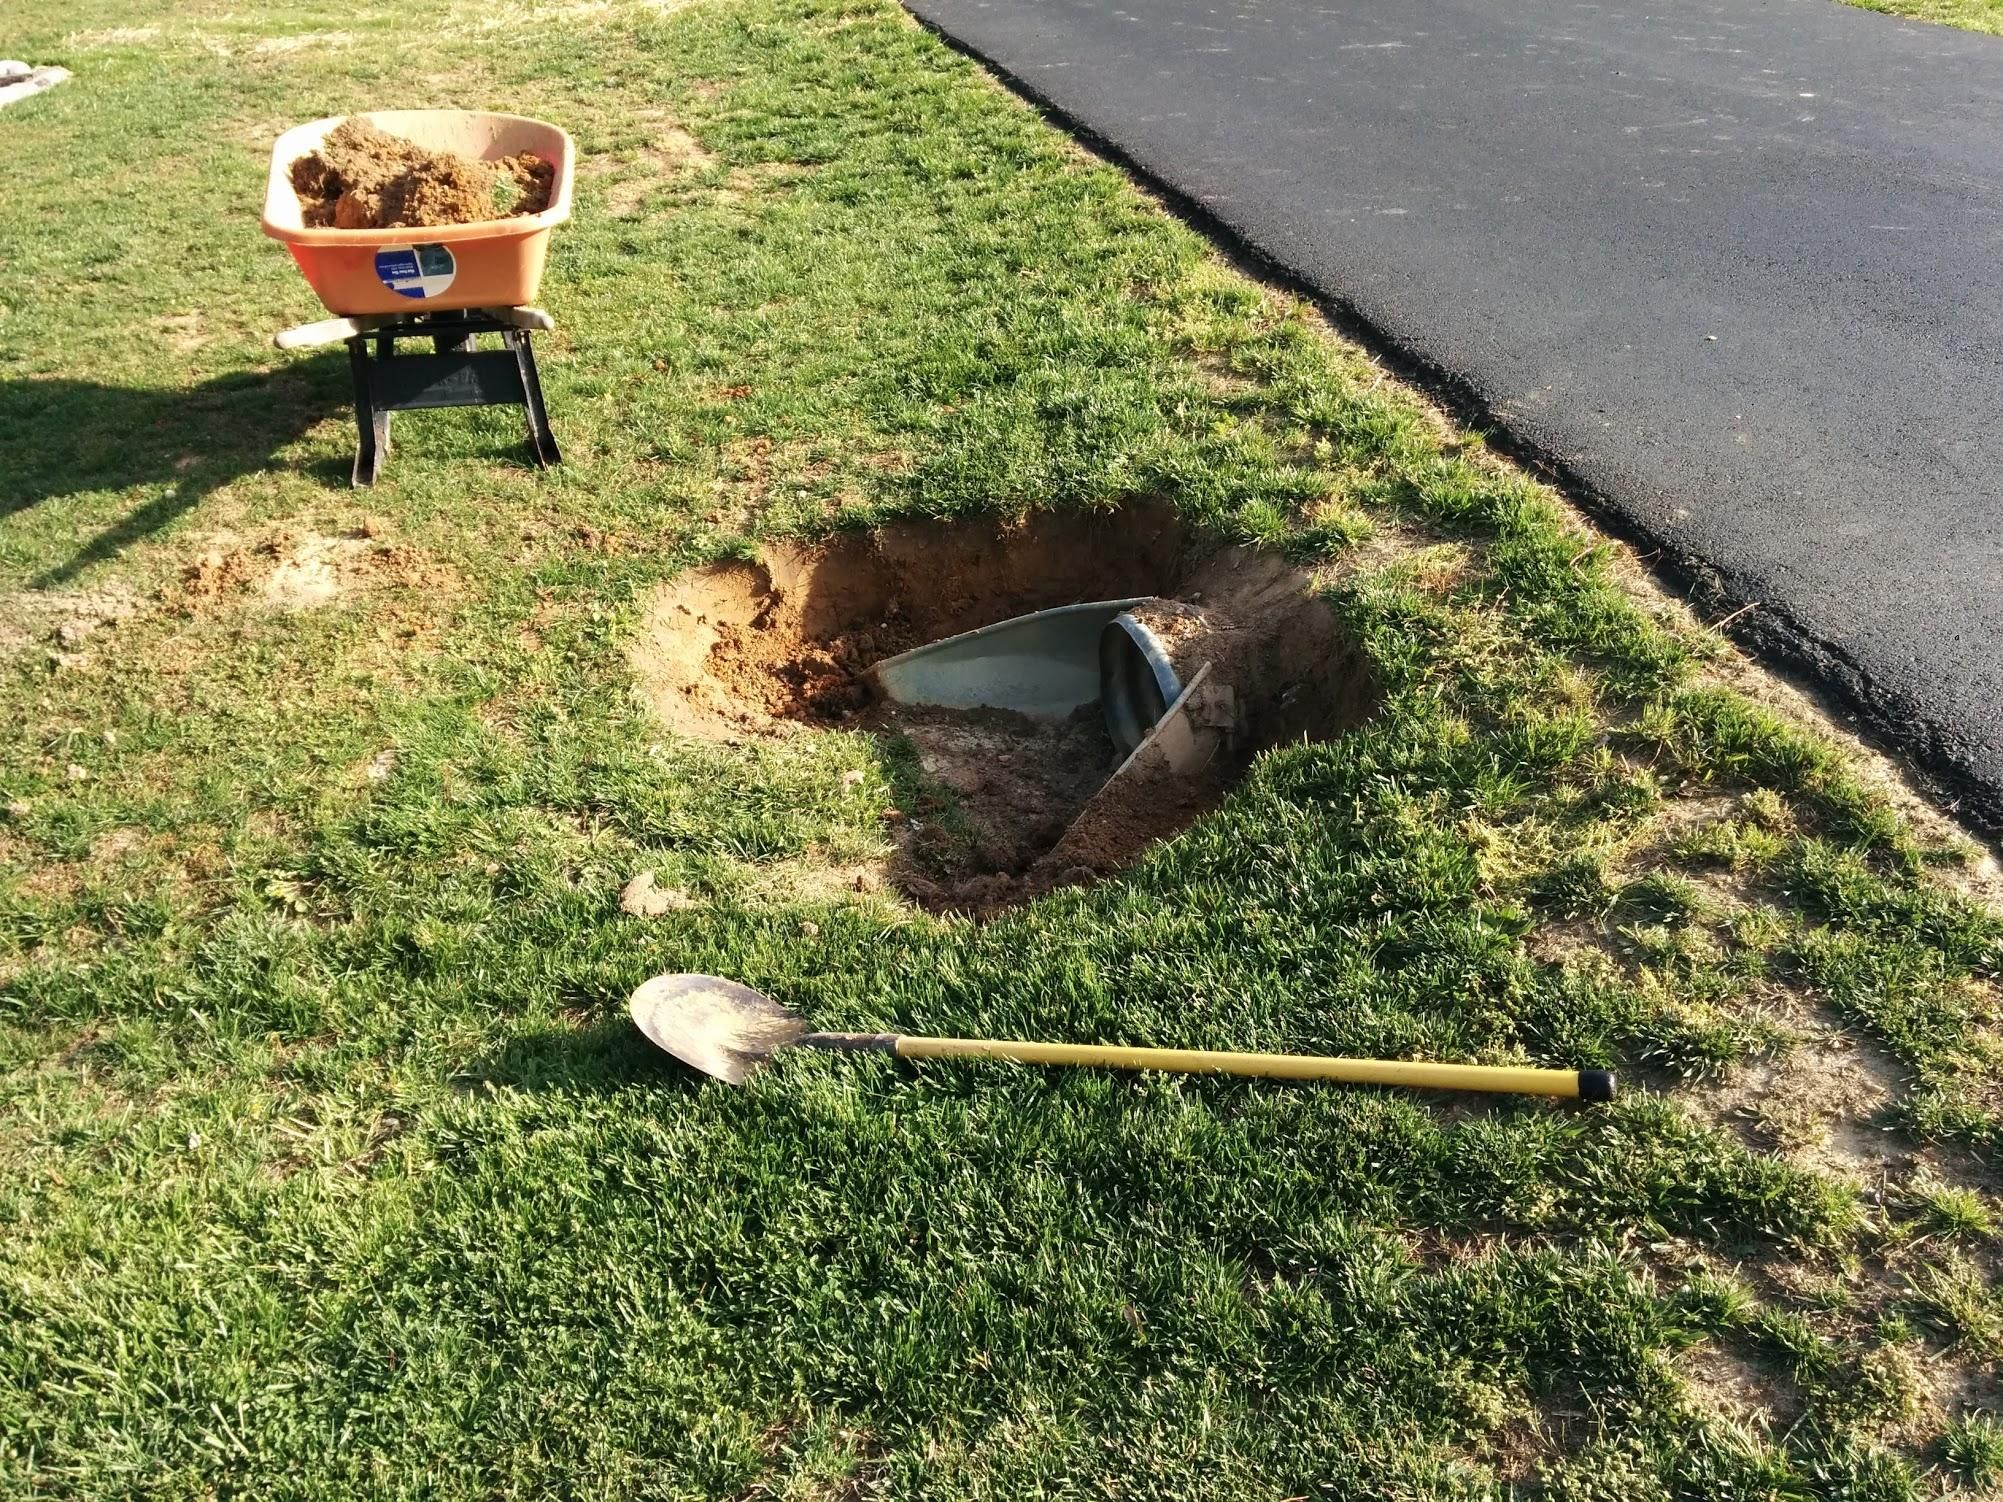 mailbox landscaping with culvert.  Culvert Mailbox Landscaping With Culvert About Culvert Ideas On Pinterest   Driveway Entrance Culverts With Mailbox Landscaping Culvert